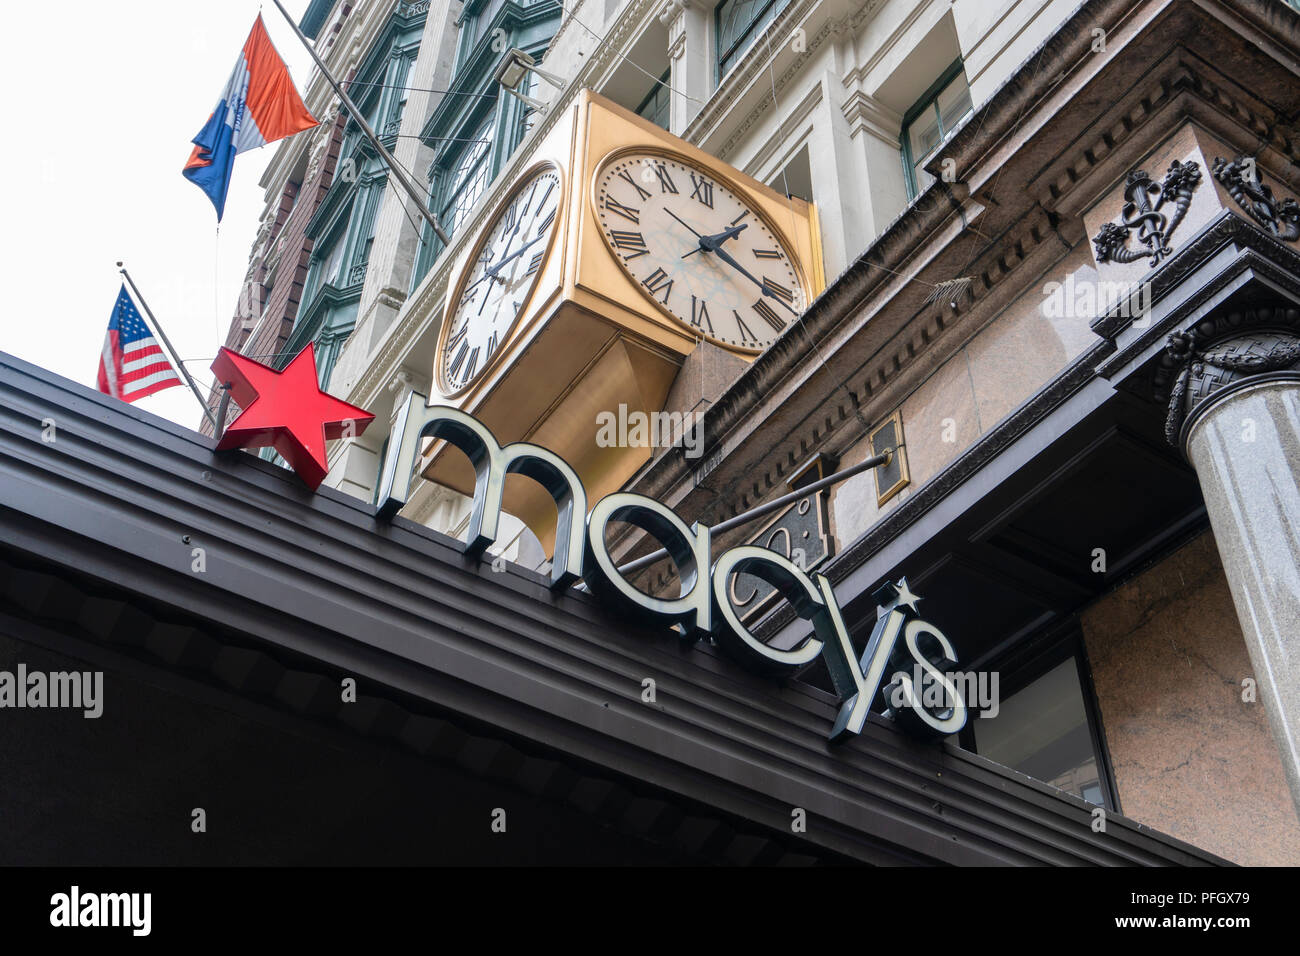 Logo of the Macy's department store in New York City - Stock Image